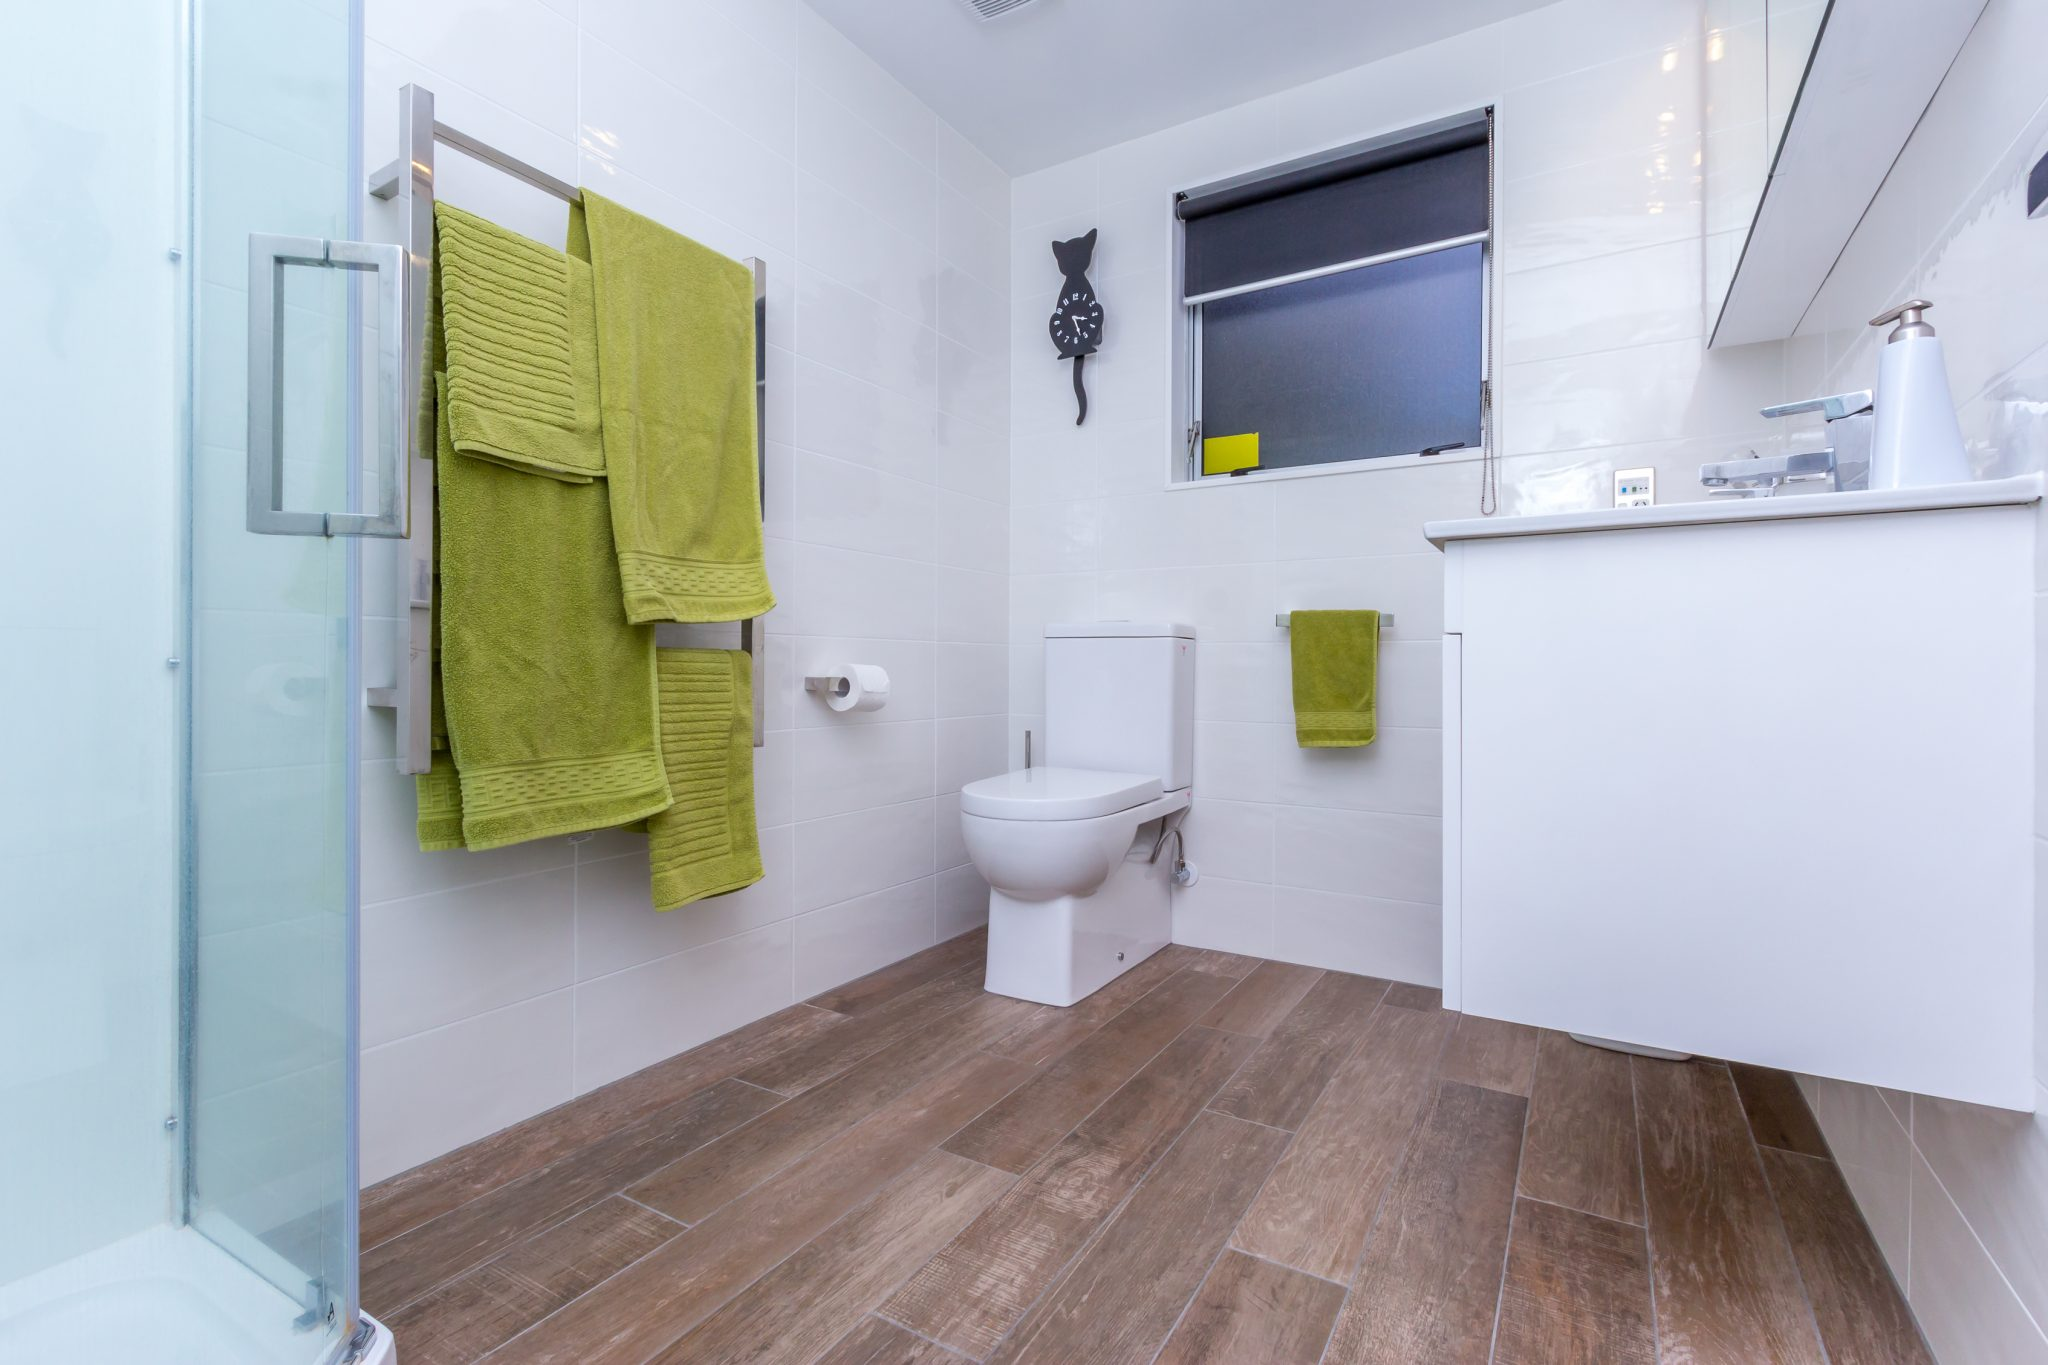 Orchard Road, Browns Bay -Bathroom Renovation